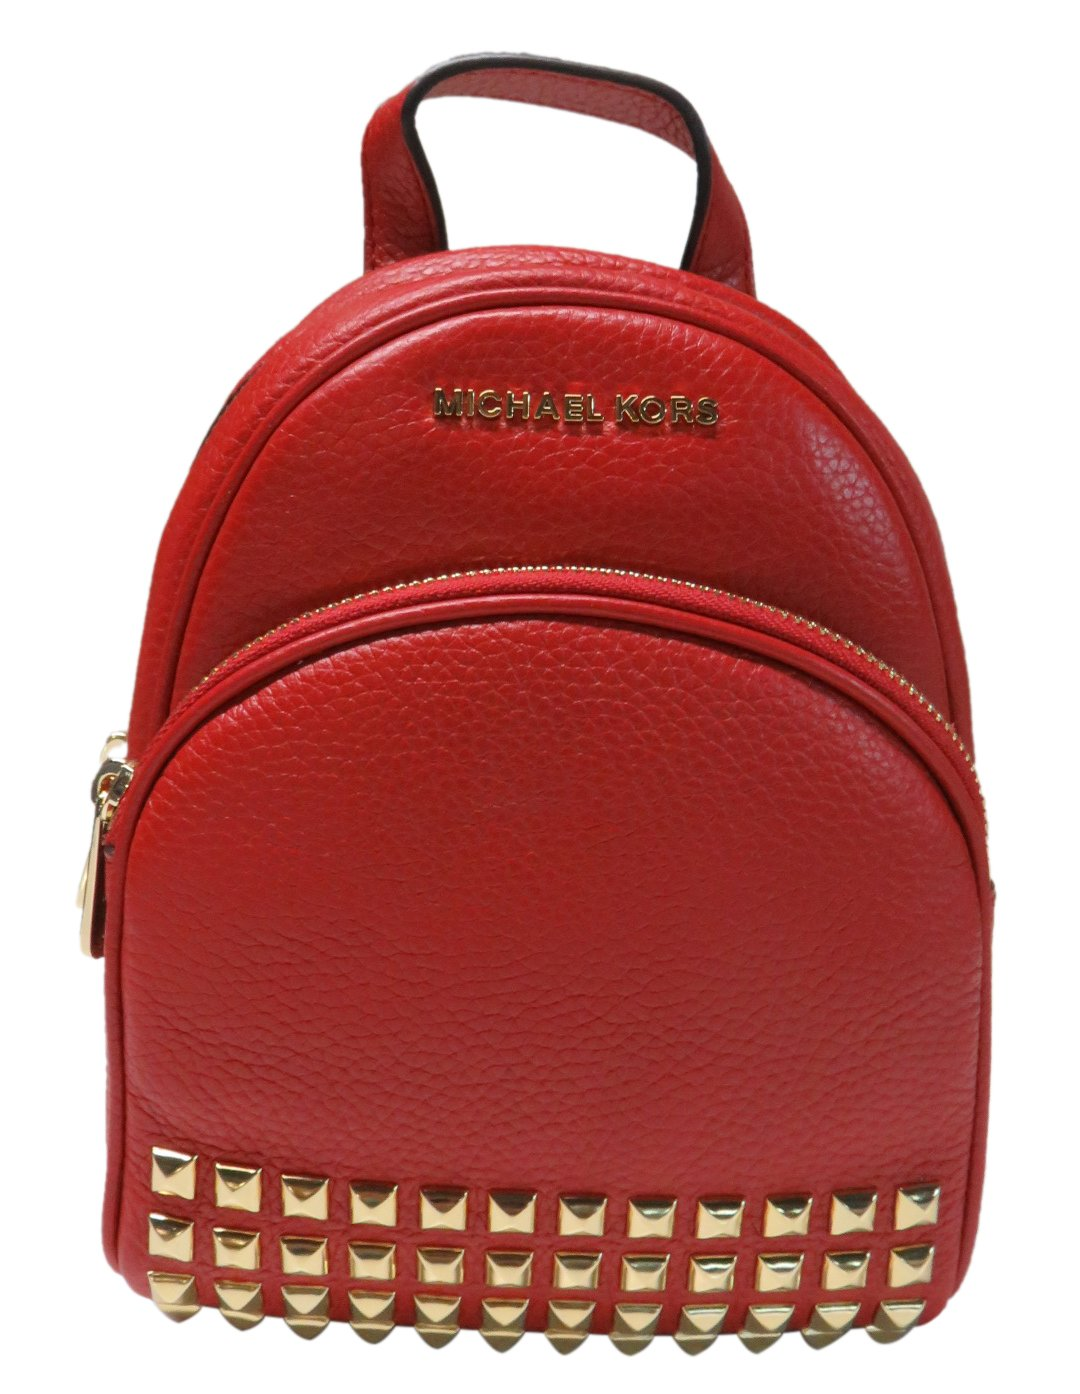 Michael Kors Abbey Extra Small Studded Leather Backpack Red